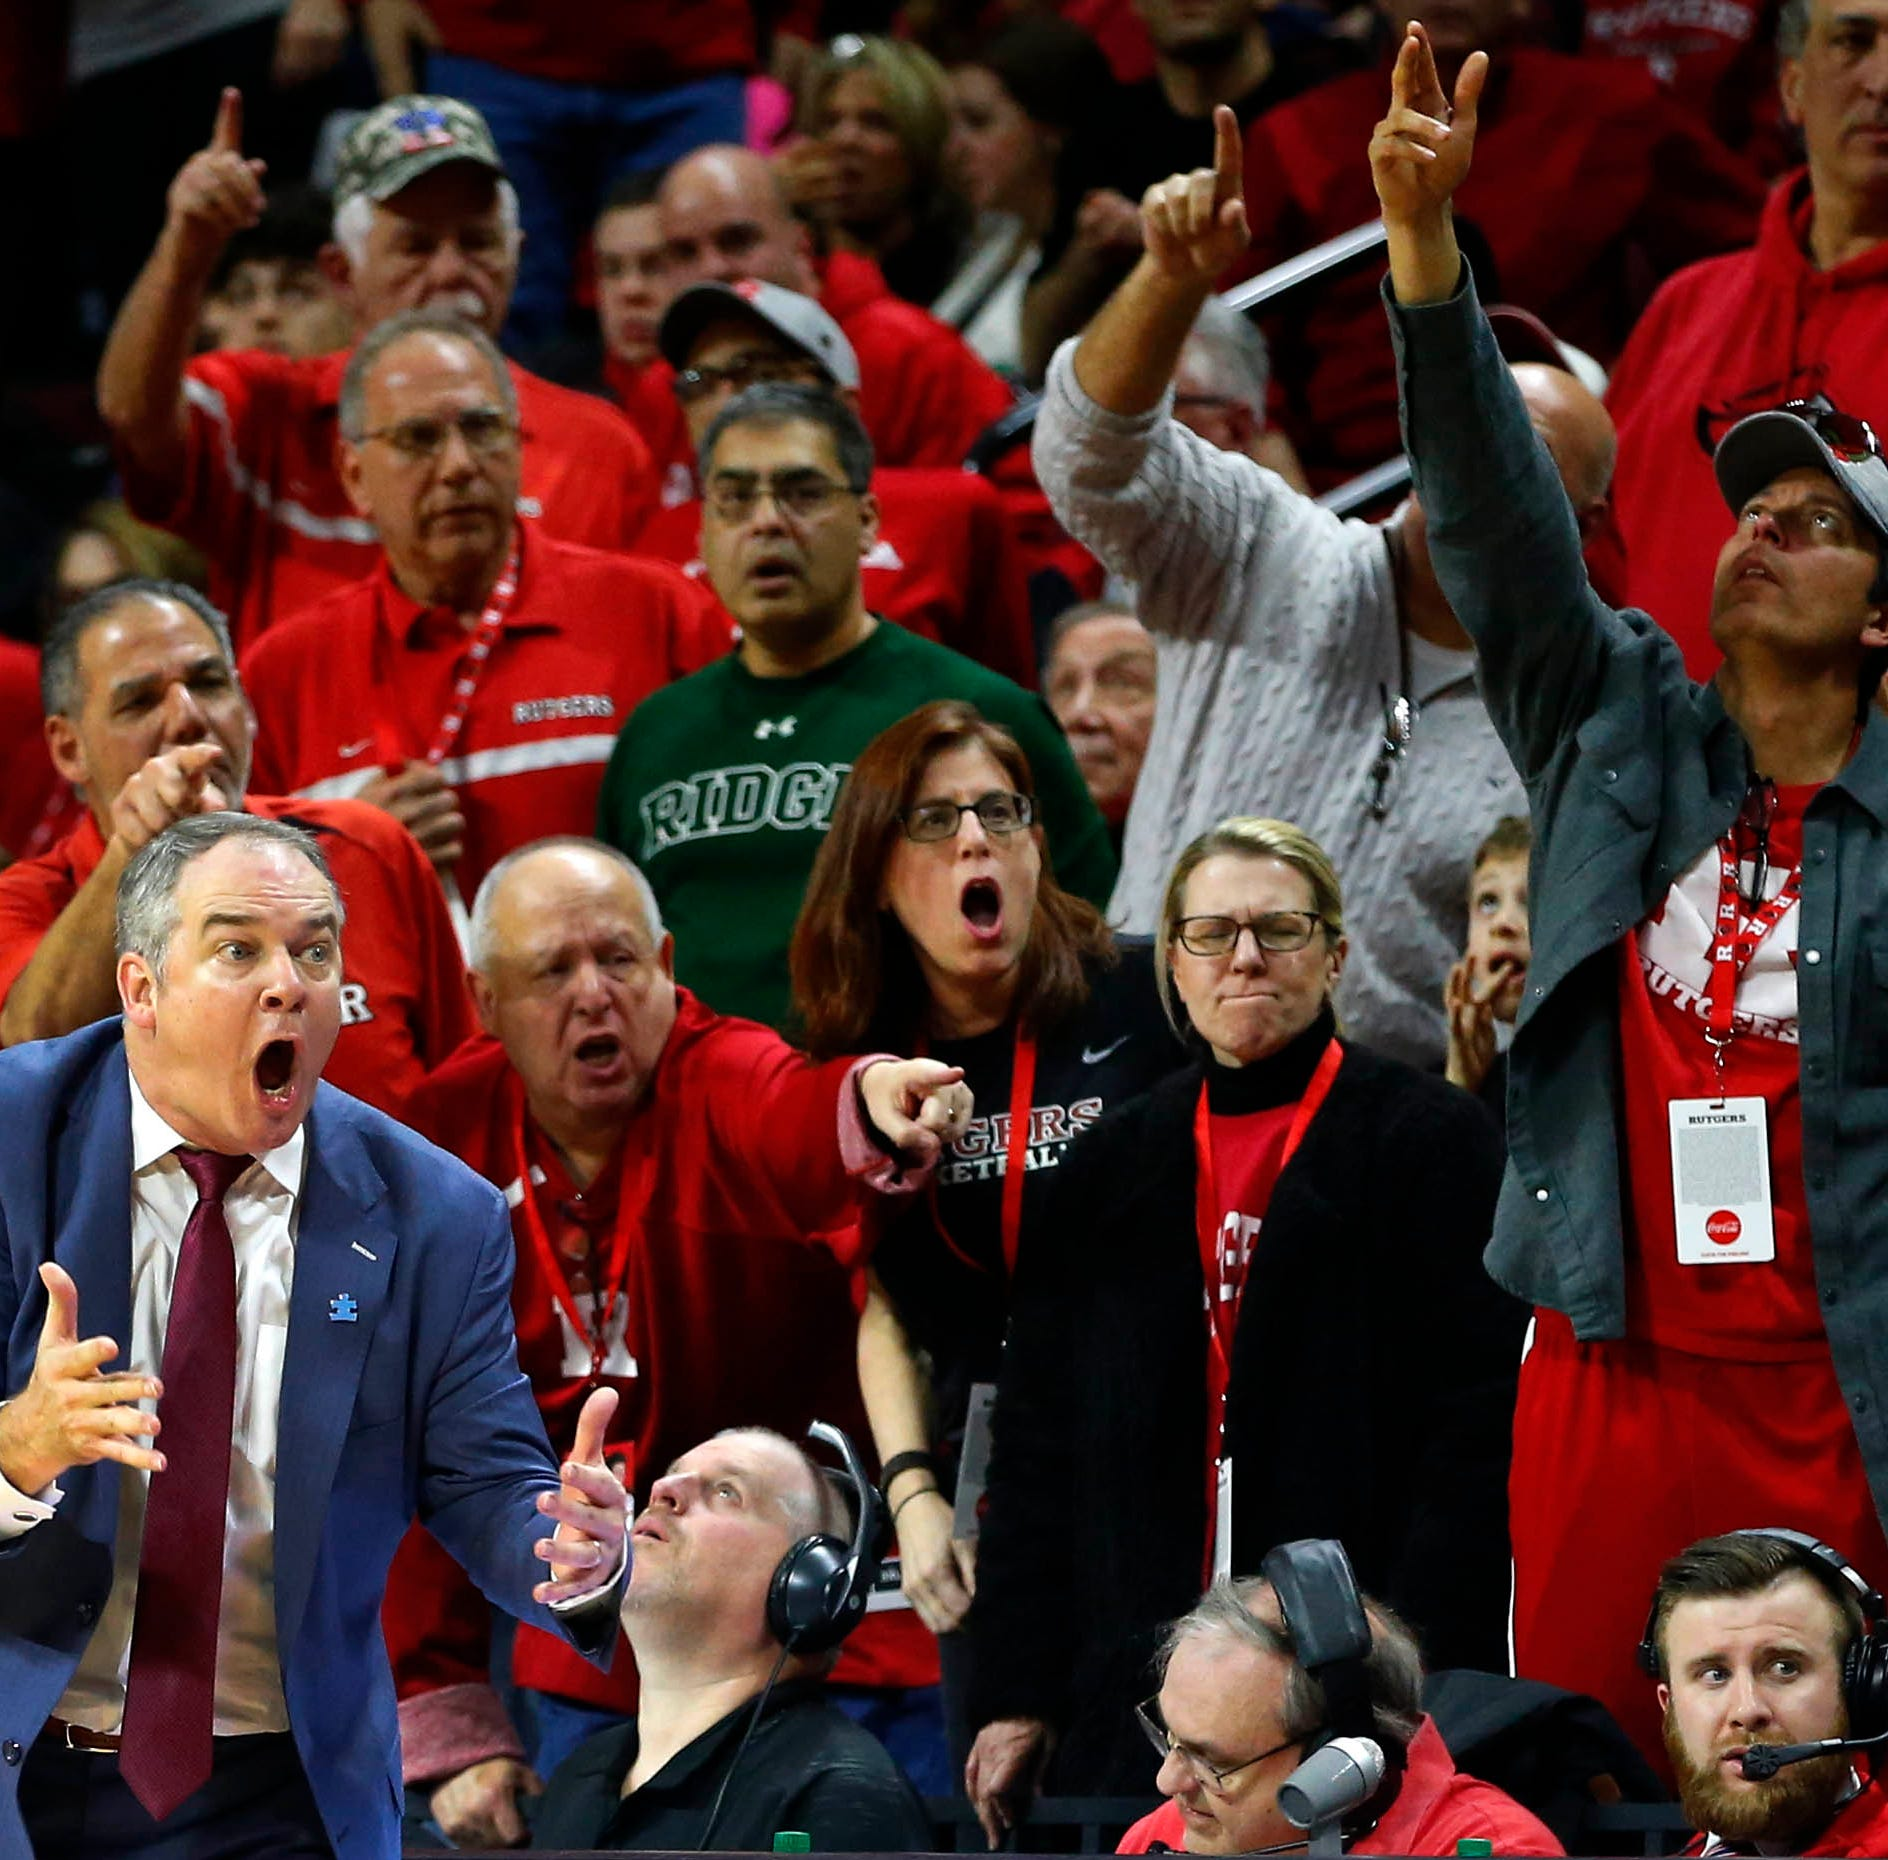 Celebrity Health: Rutgers basketball: 5 offseason priorities for an improving program to take the next step